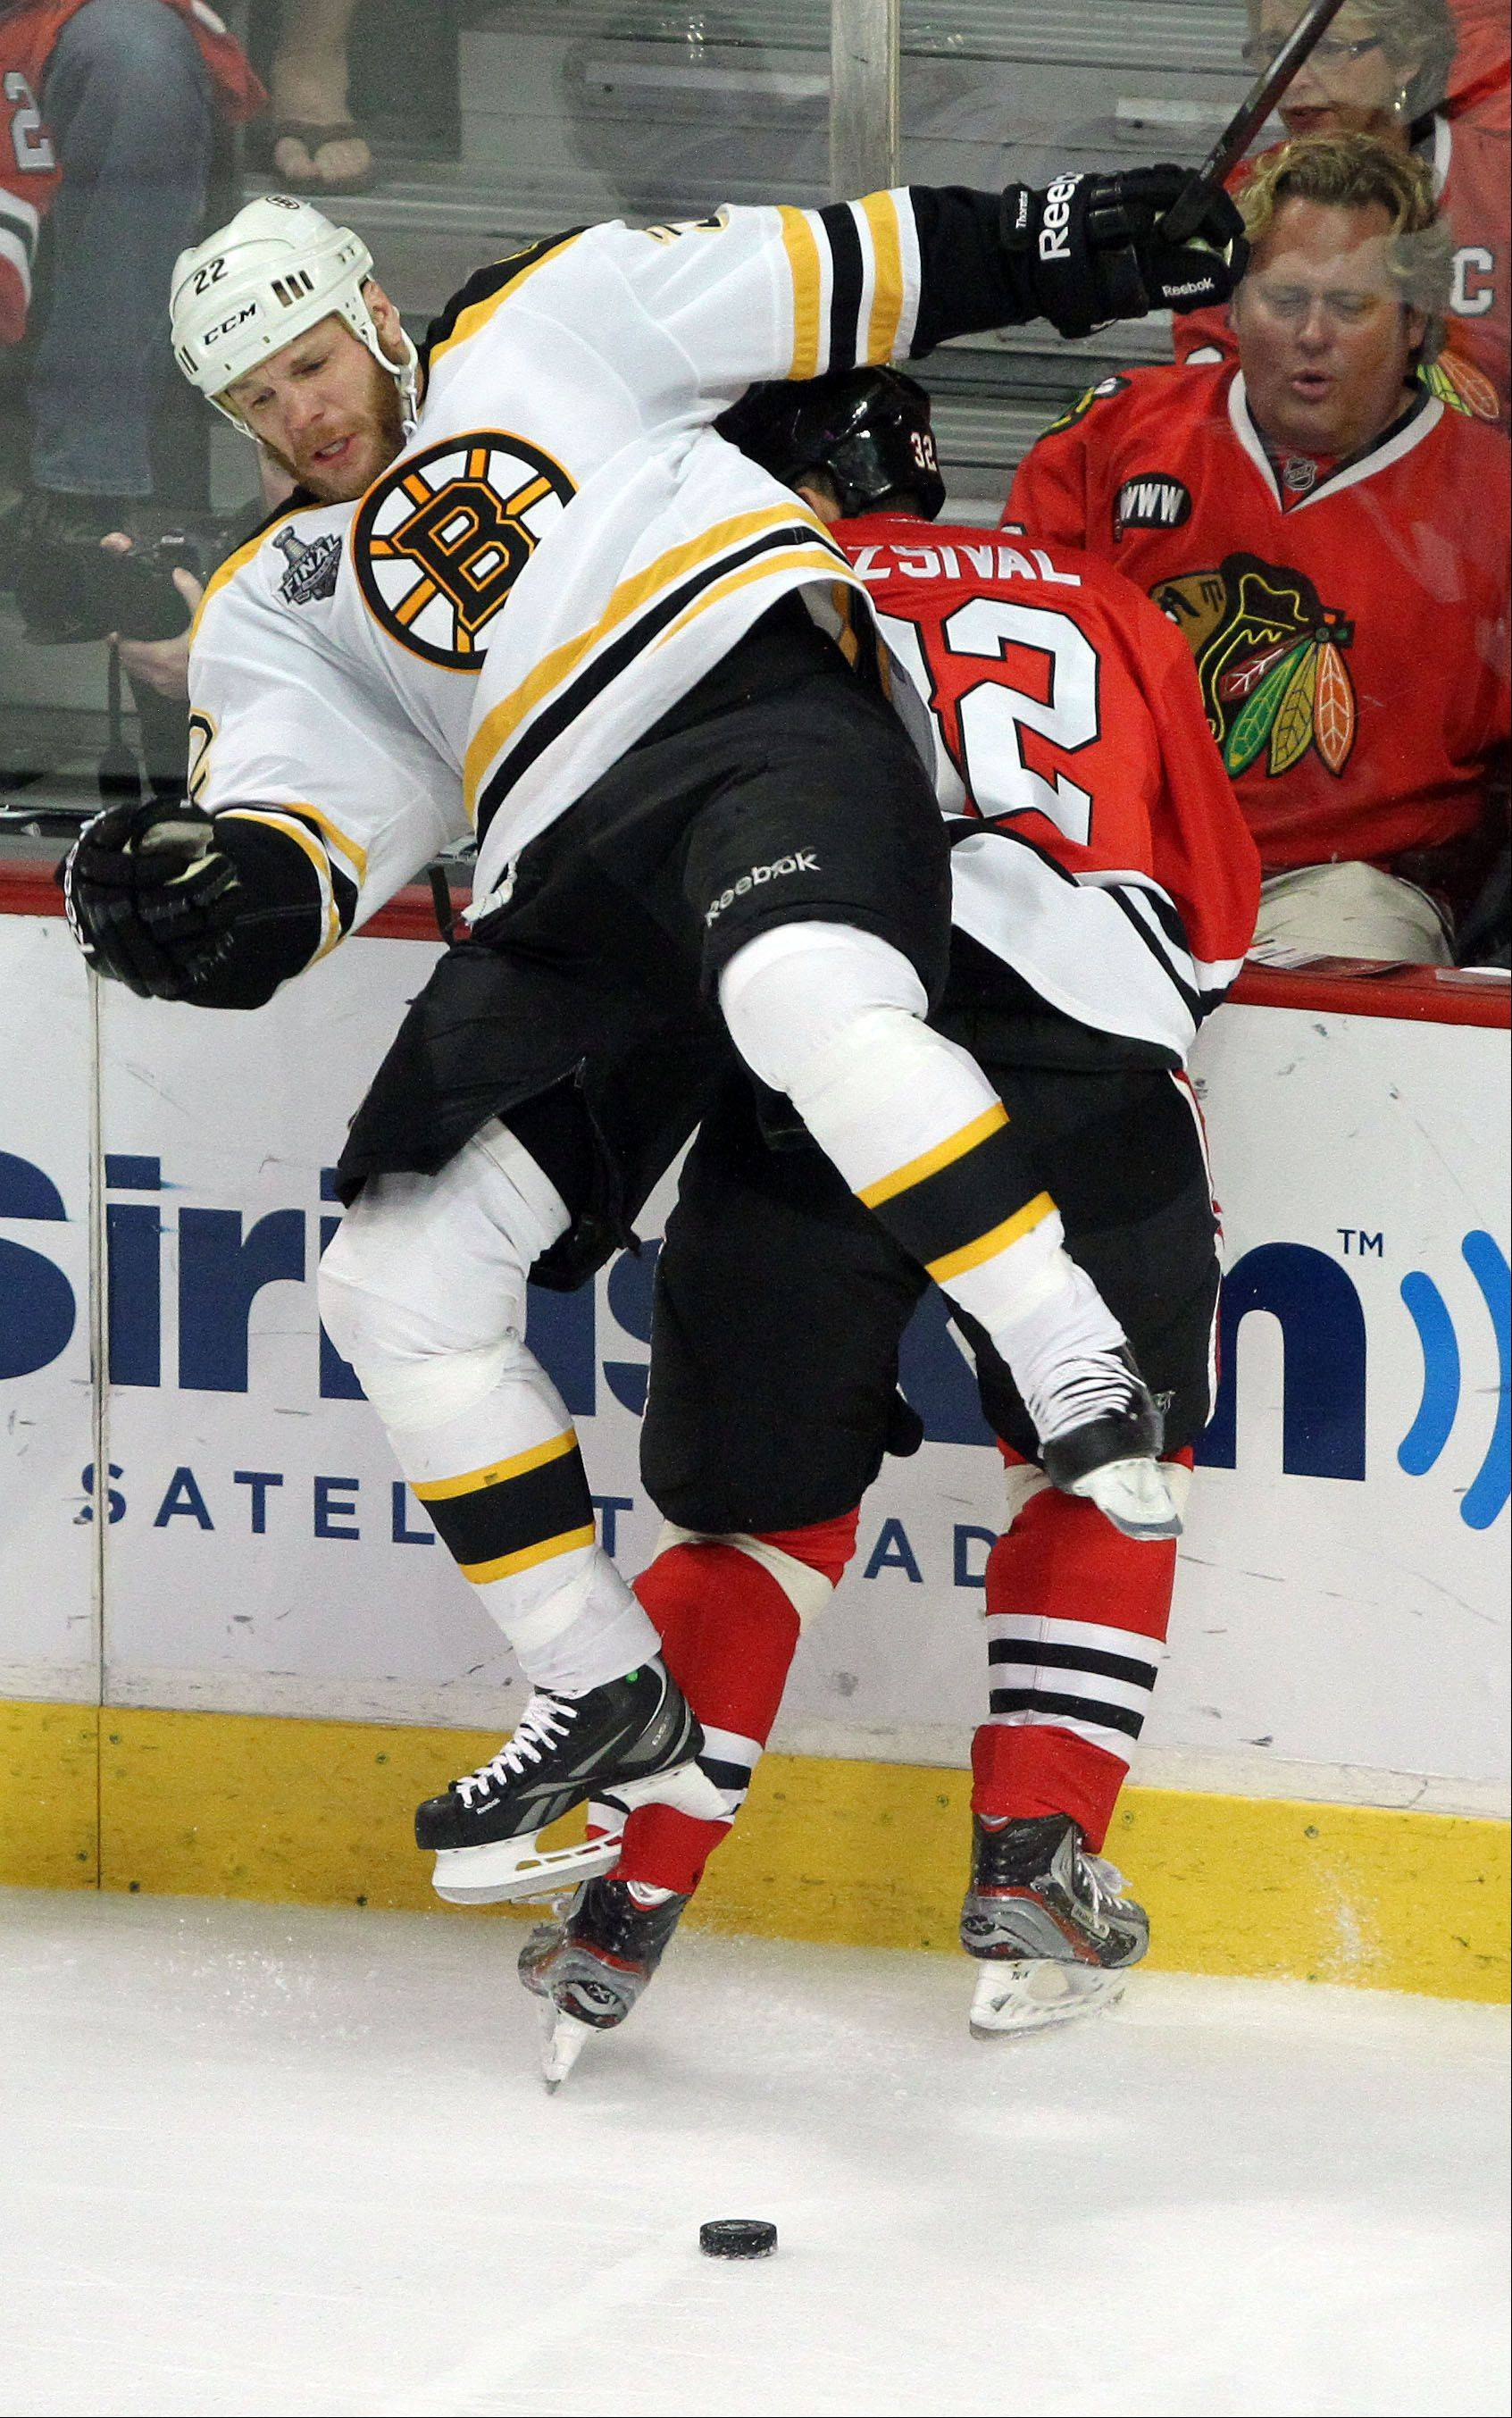 Michal Roszival gets knocked into the glass during game 2 of the Stanley Cup Finals at the United Center in Chicago Saturday.